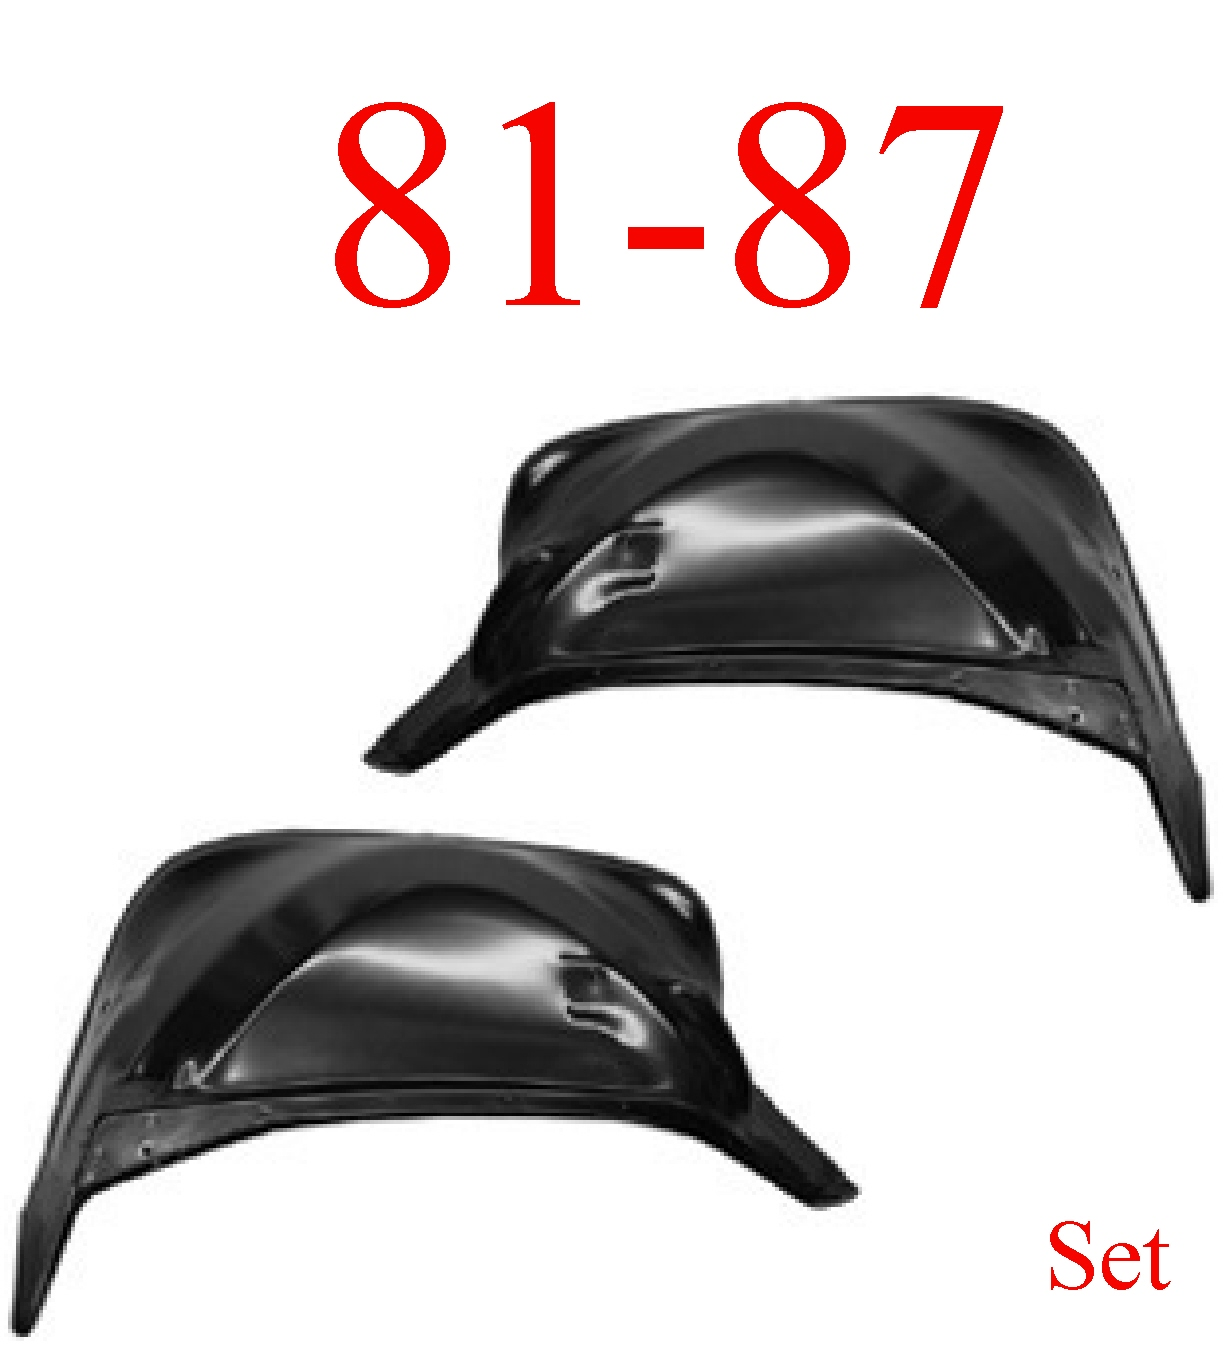 81-87 Chevy Inner Front Fender Set